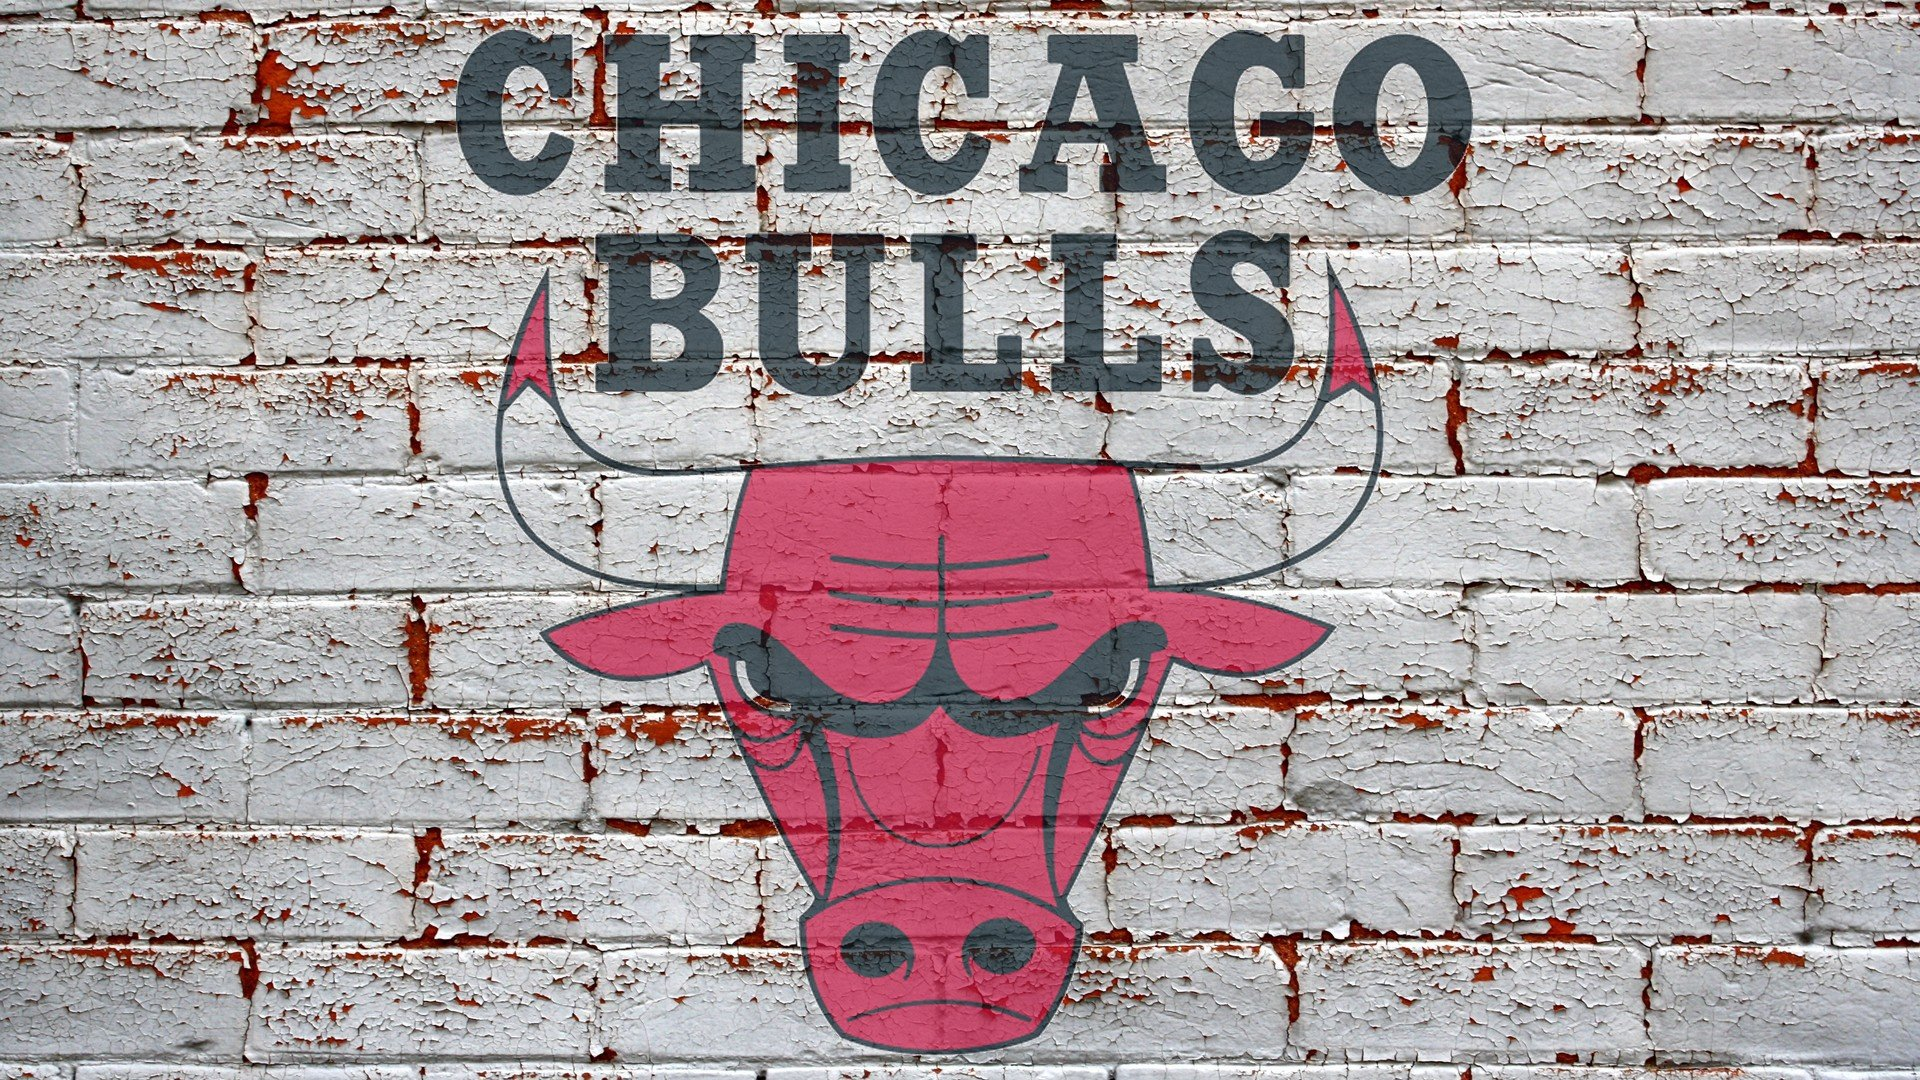 nba red wallpaper background brick bulls chicago